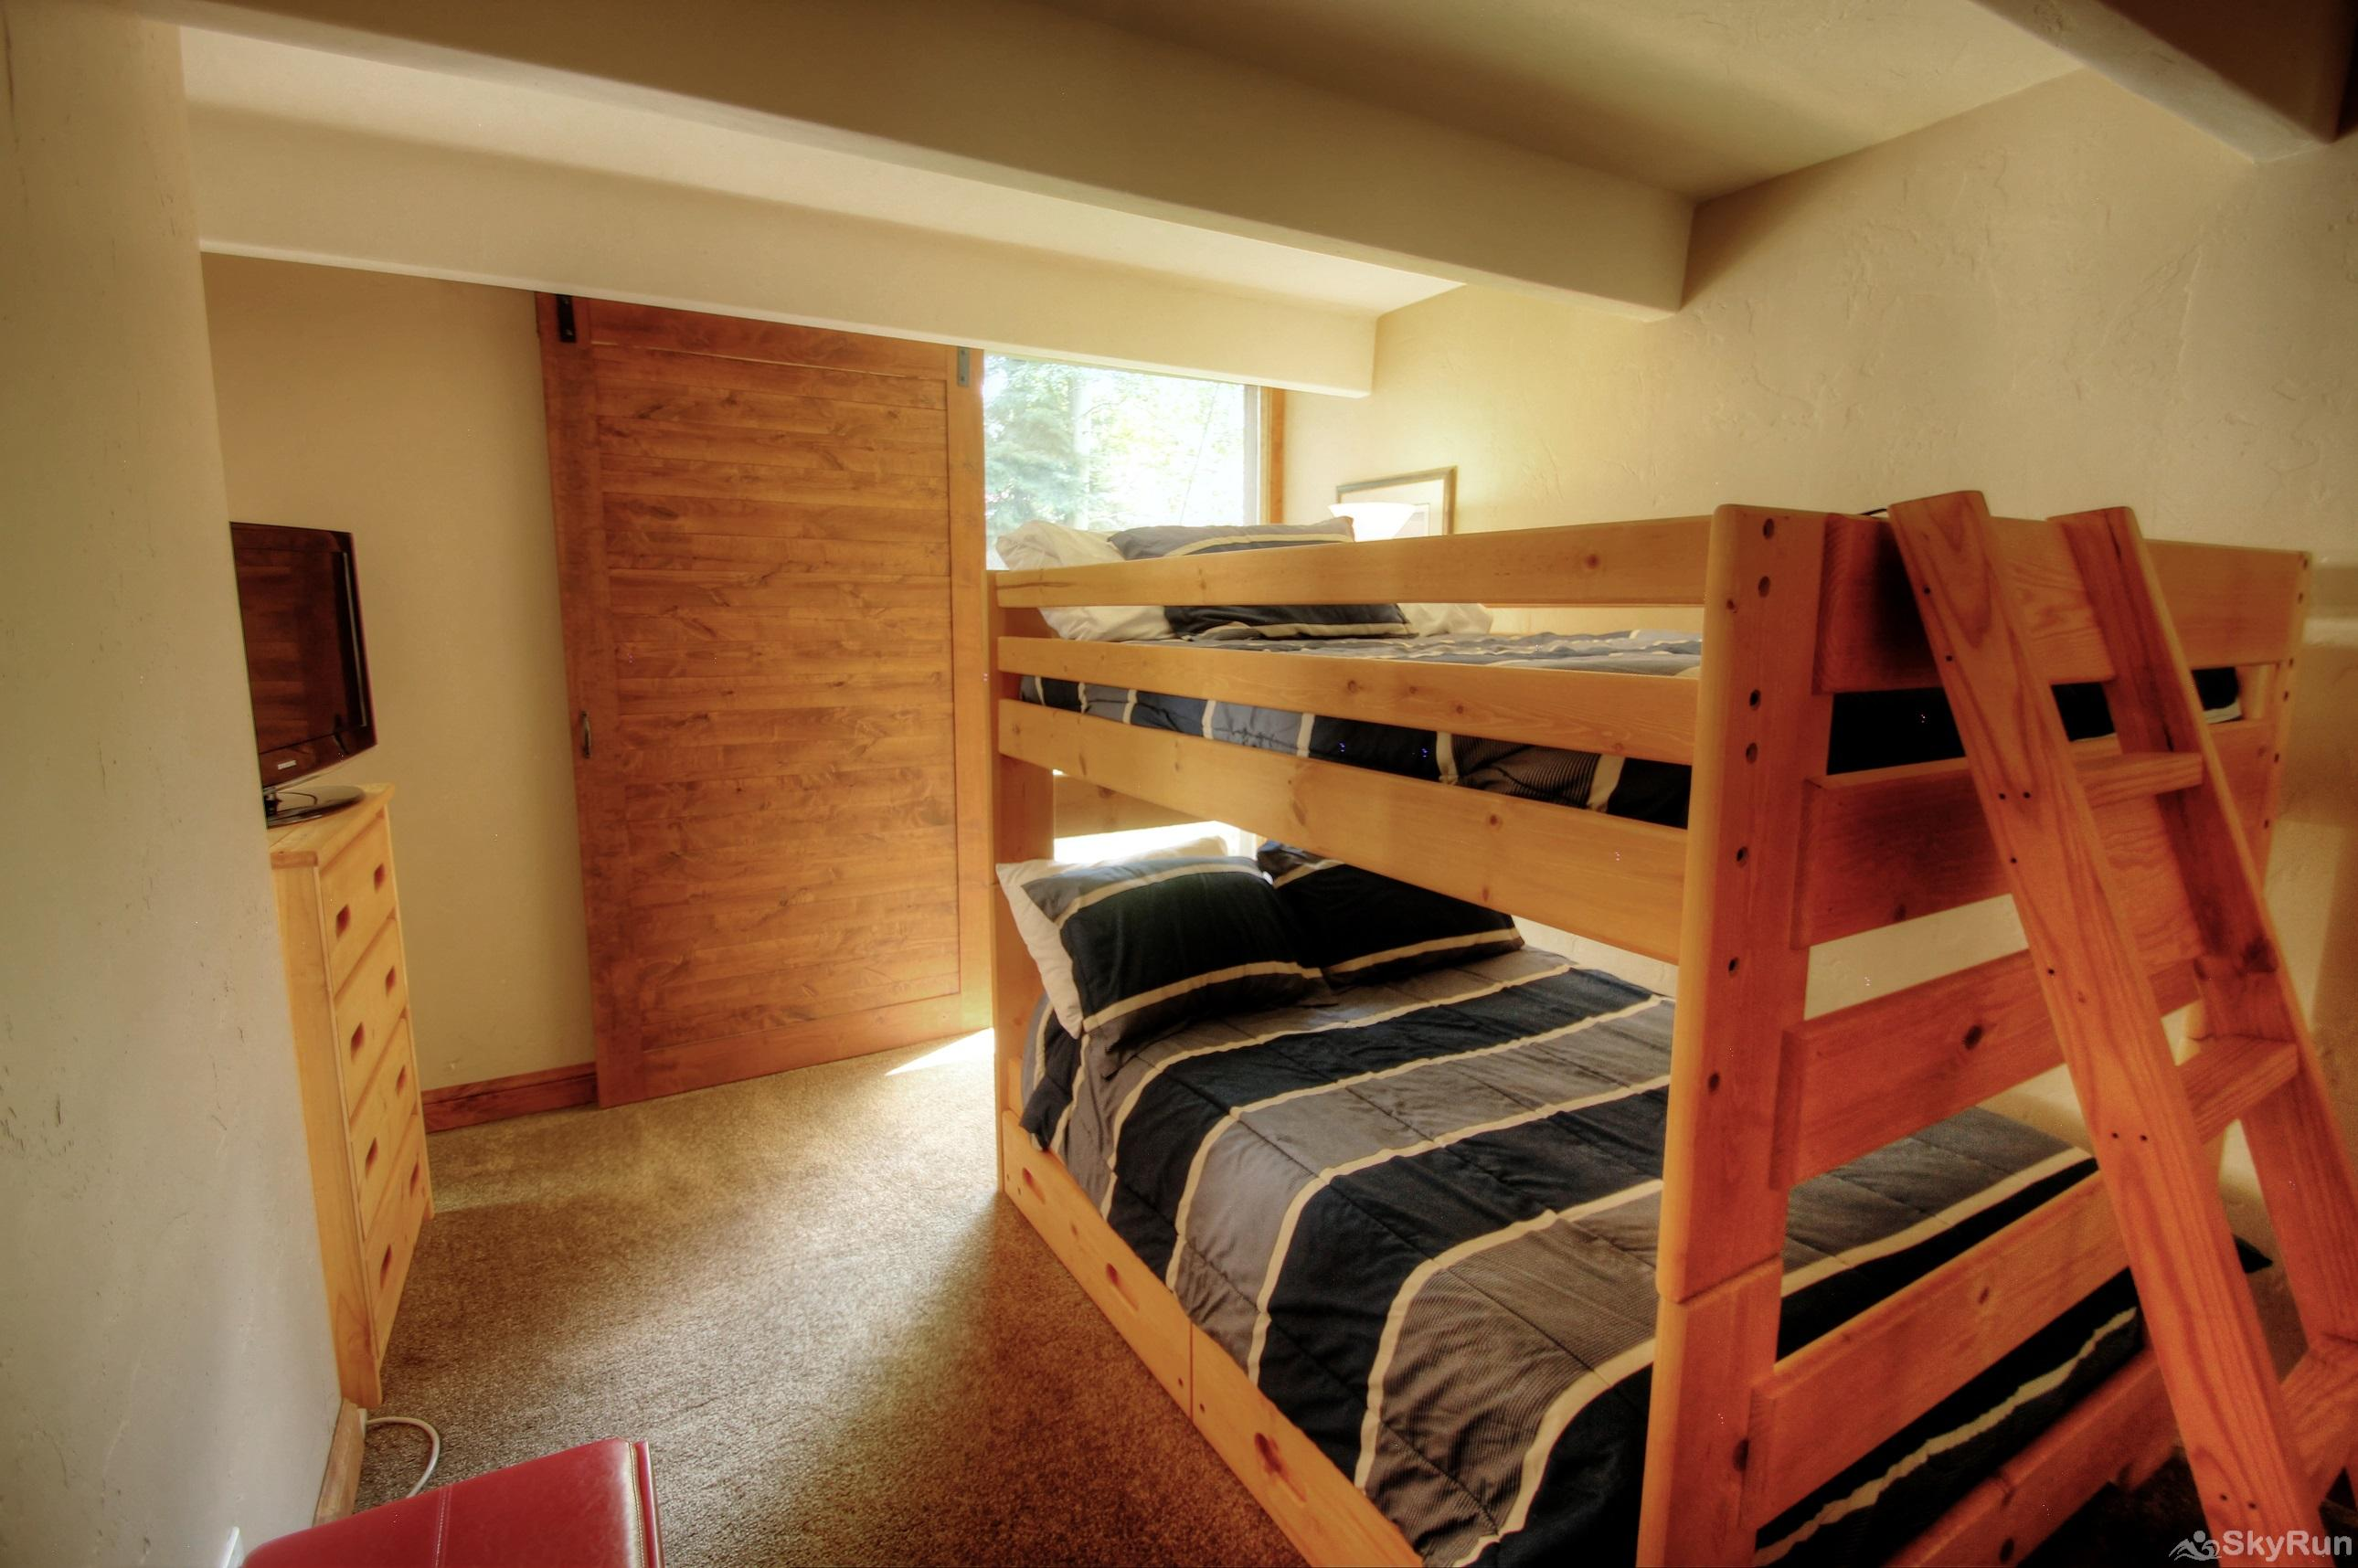 111 Vail International Bunk Room